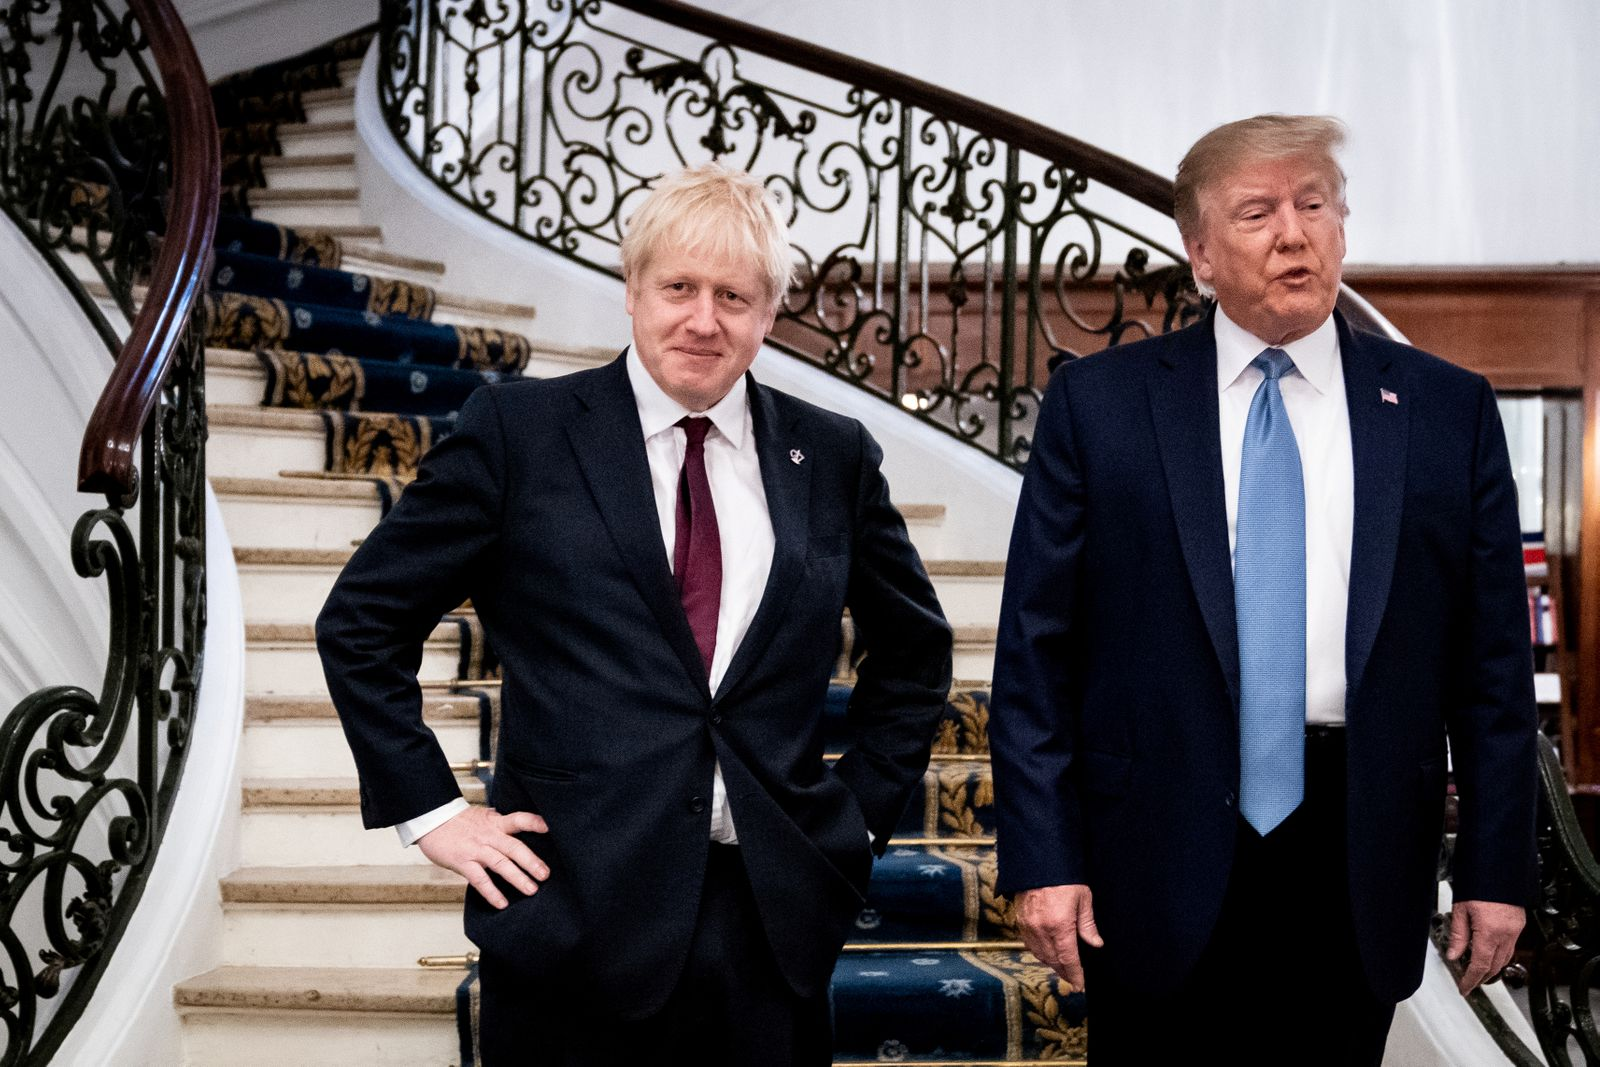 FILE PHOTO: U.S. President Donald Trump and Britain's Prime Minister Boris Johnson arrive for a bilateral meeting during the G7 summit in Biarritz, France